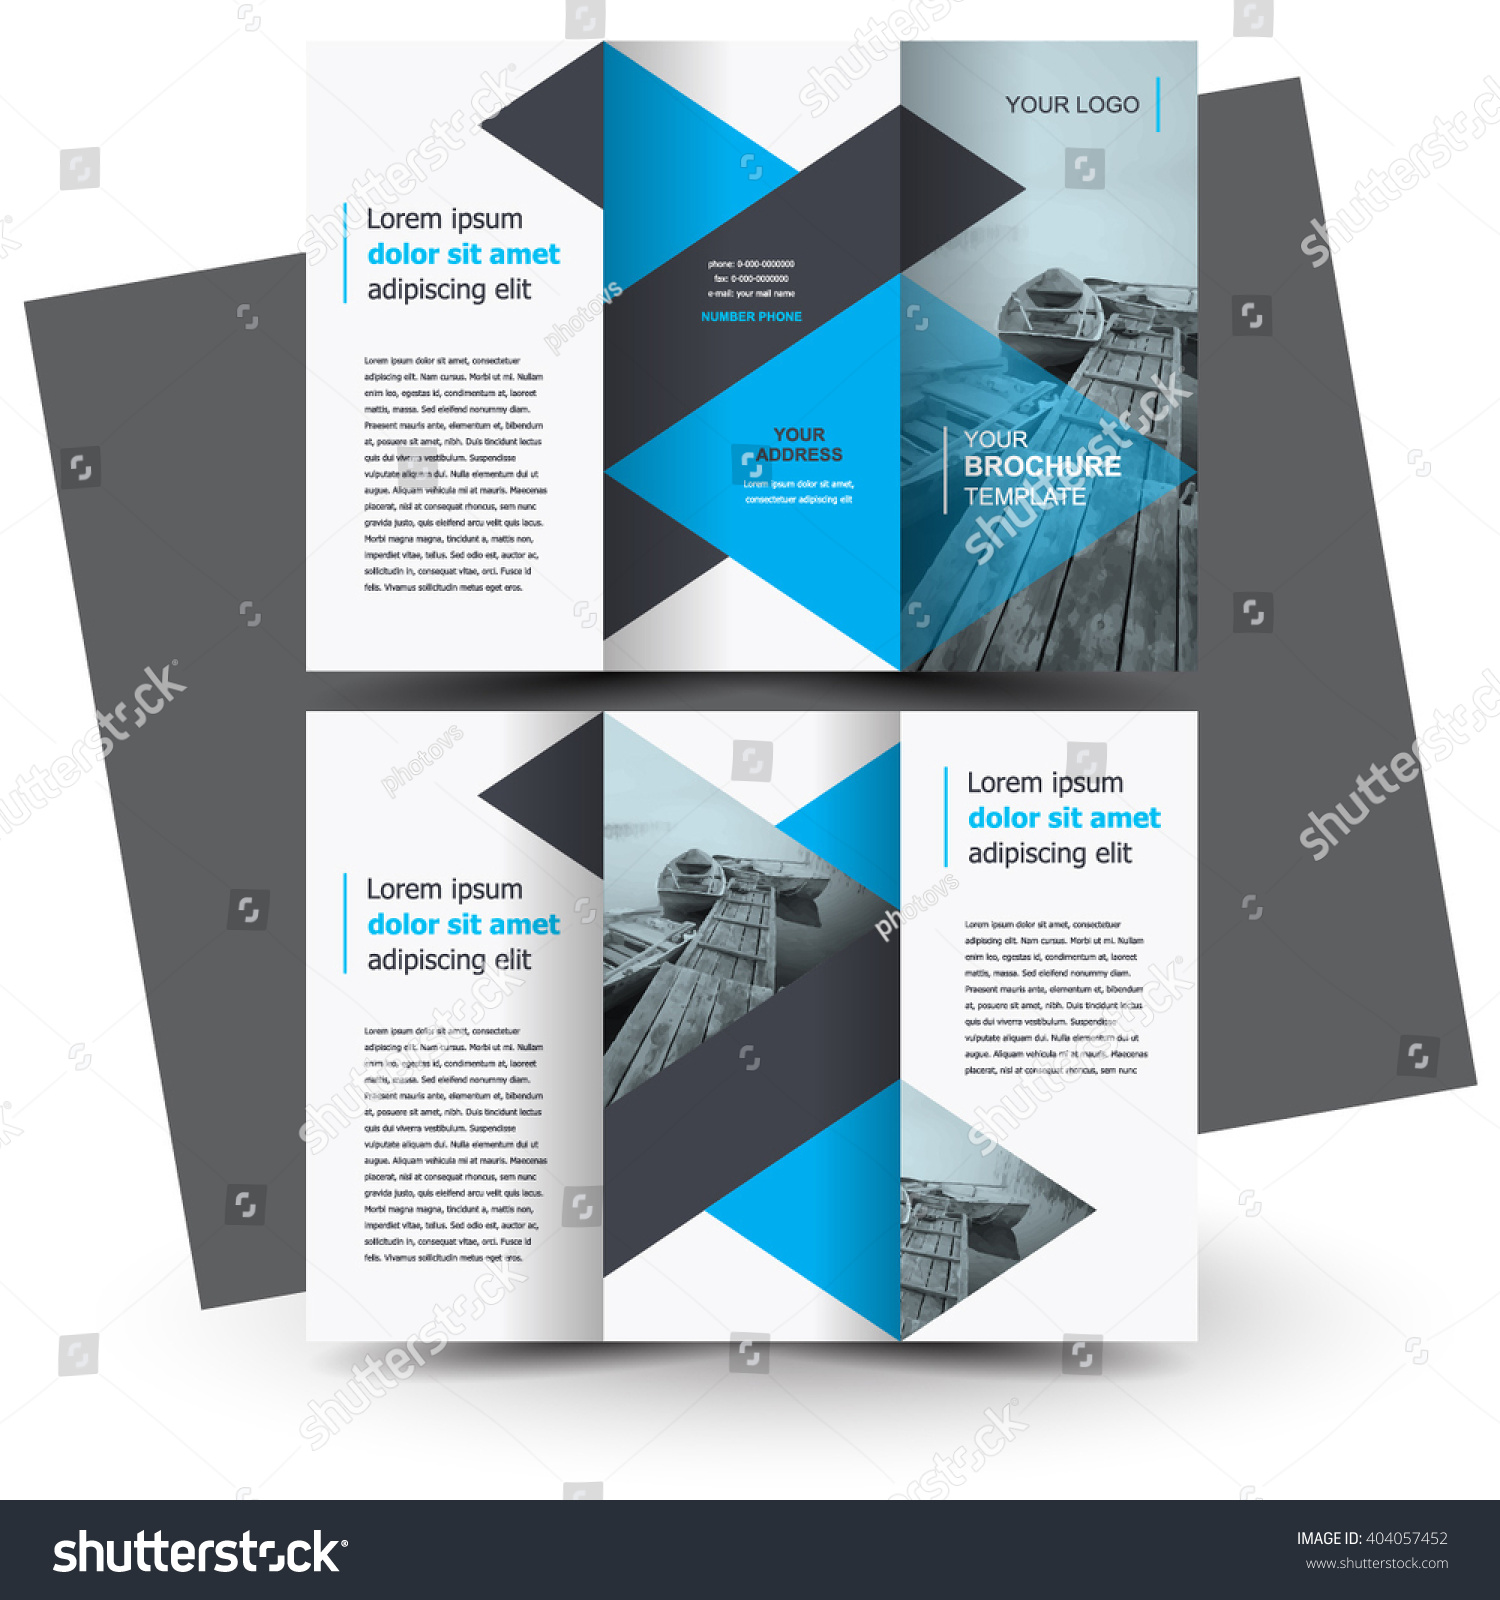 brochures design templates - brochure design brochure template creative trifold stock